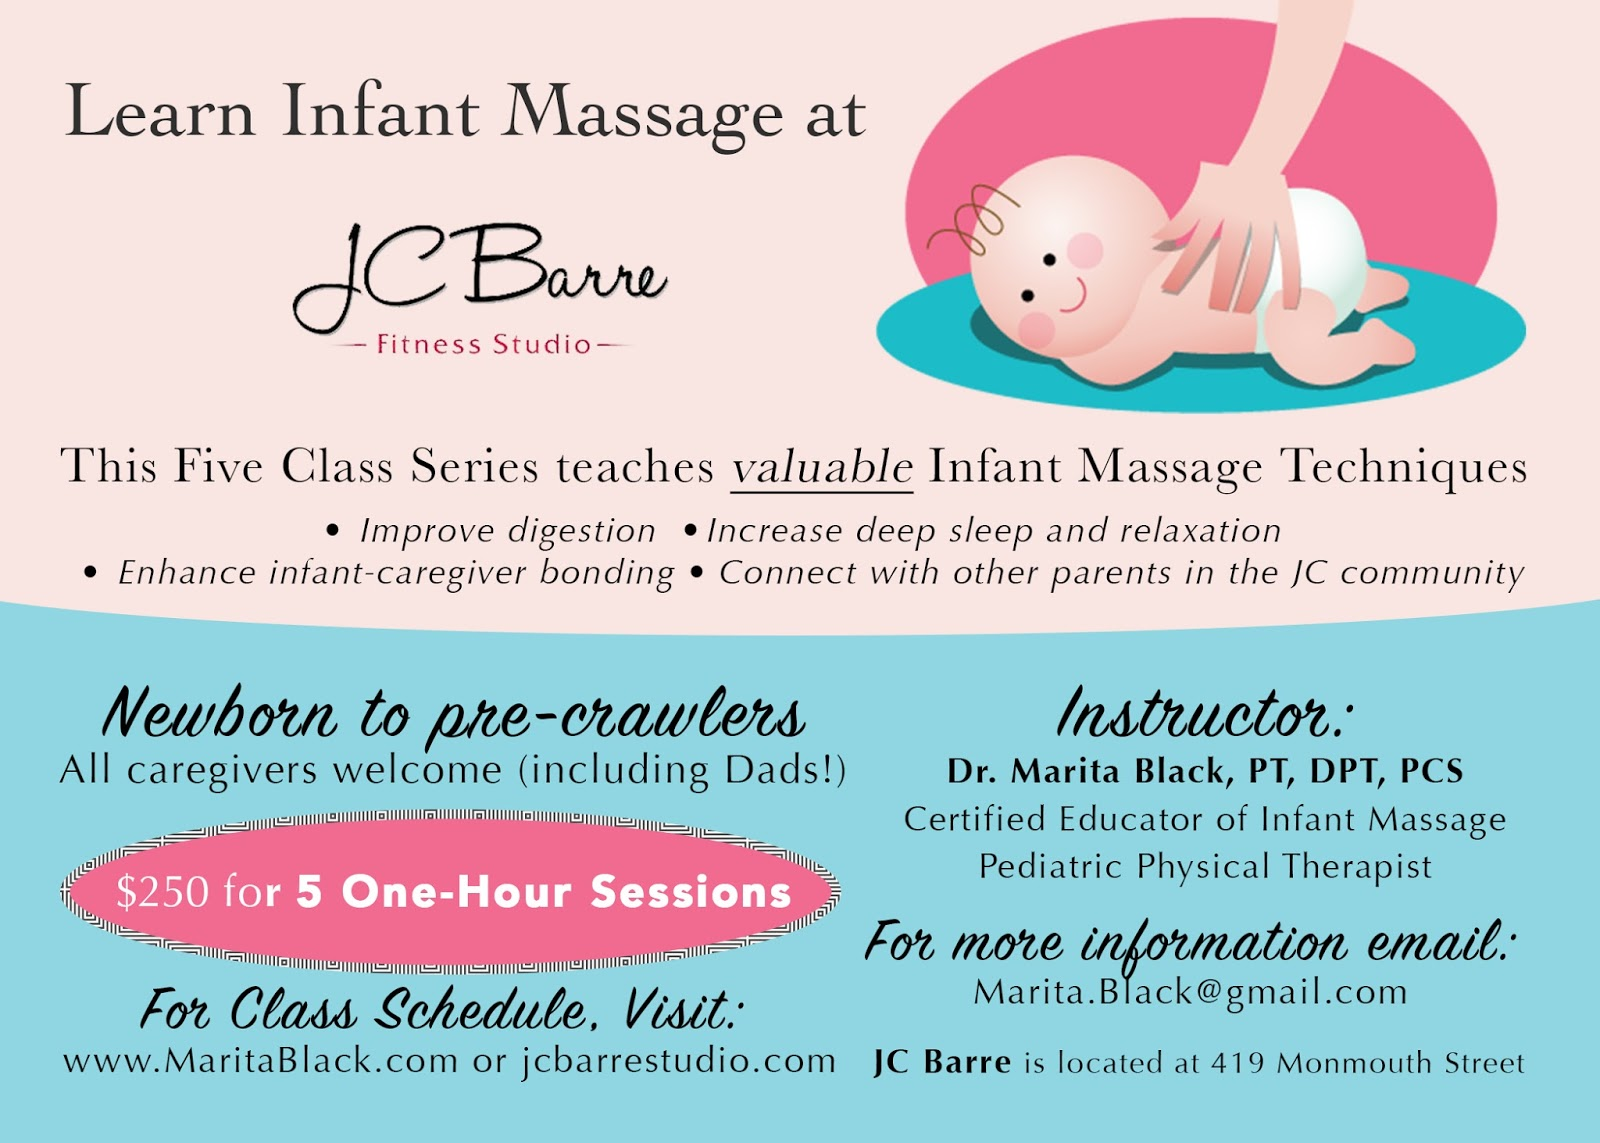 Dr Marita Black Pt Dpt Pcs Infant Massage Classes In Jersey City